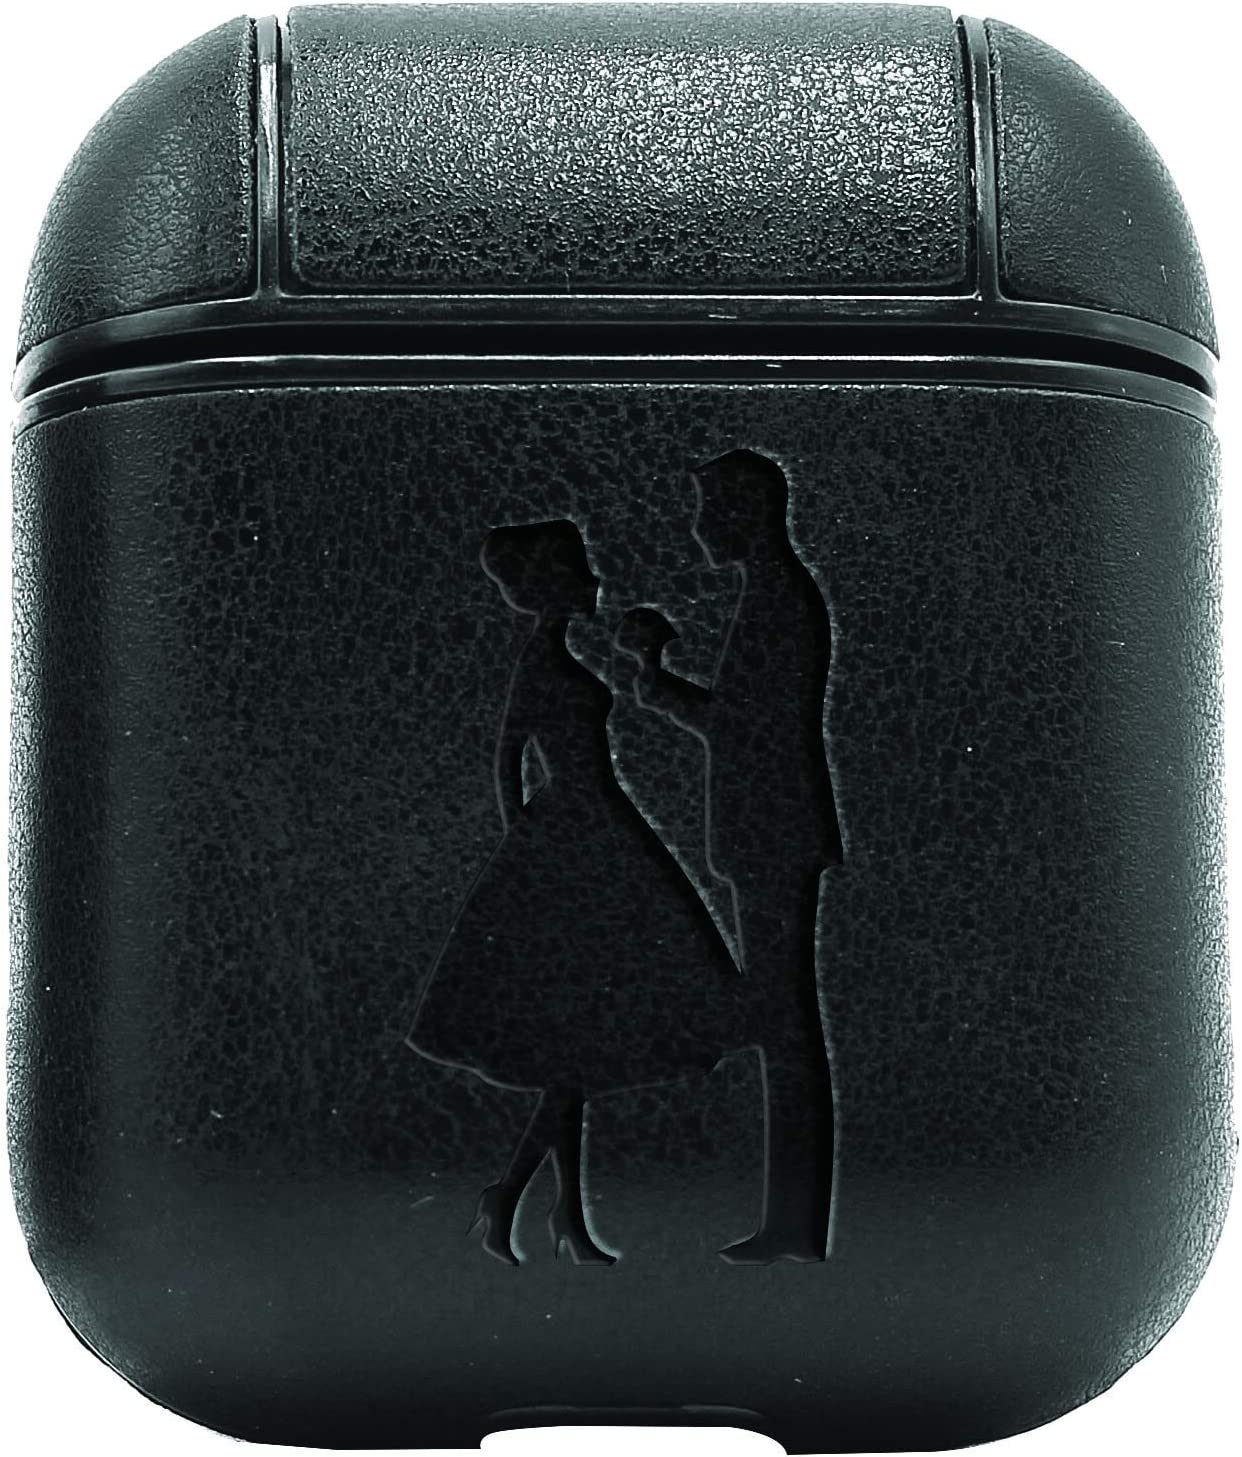 Vintage Black Romantic AirPods Cases